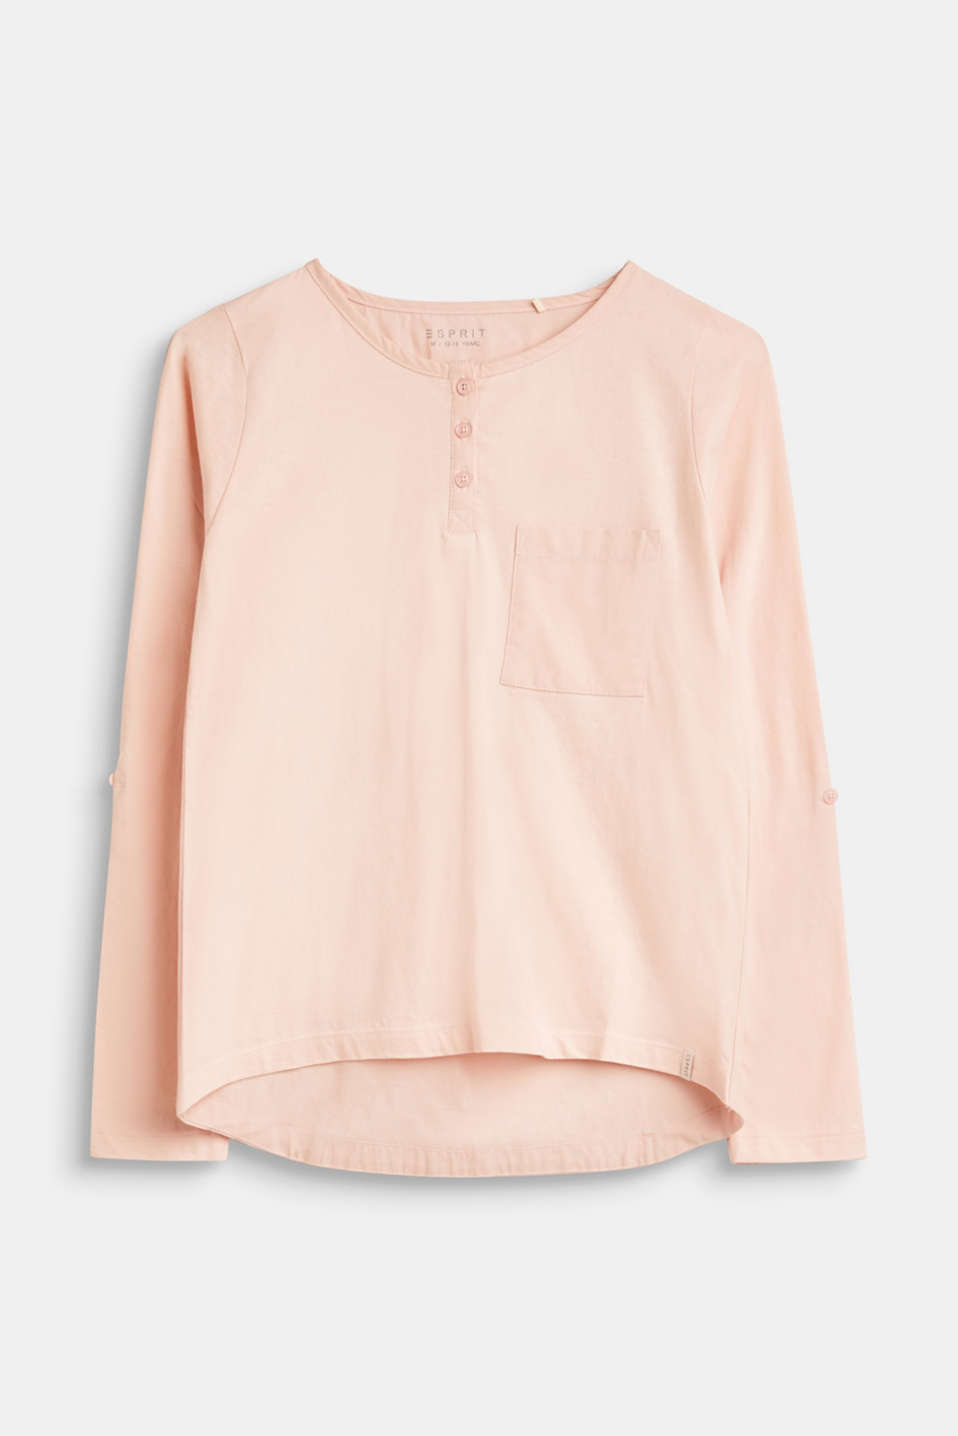 Esprit - Long sleeve top with a breast pocket, 100% cotton